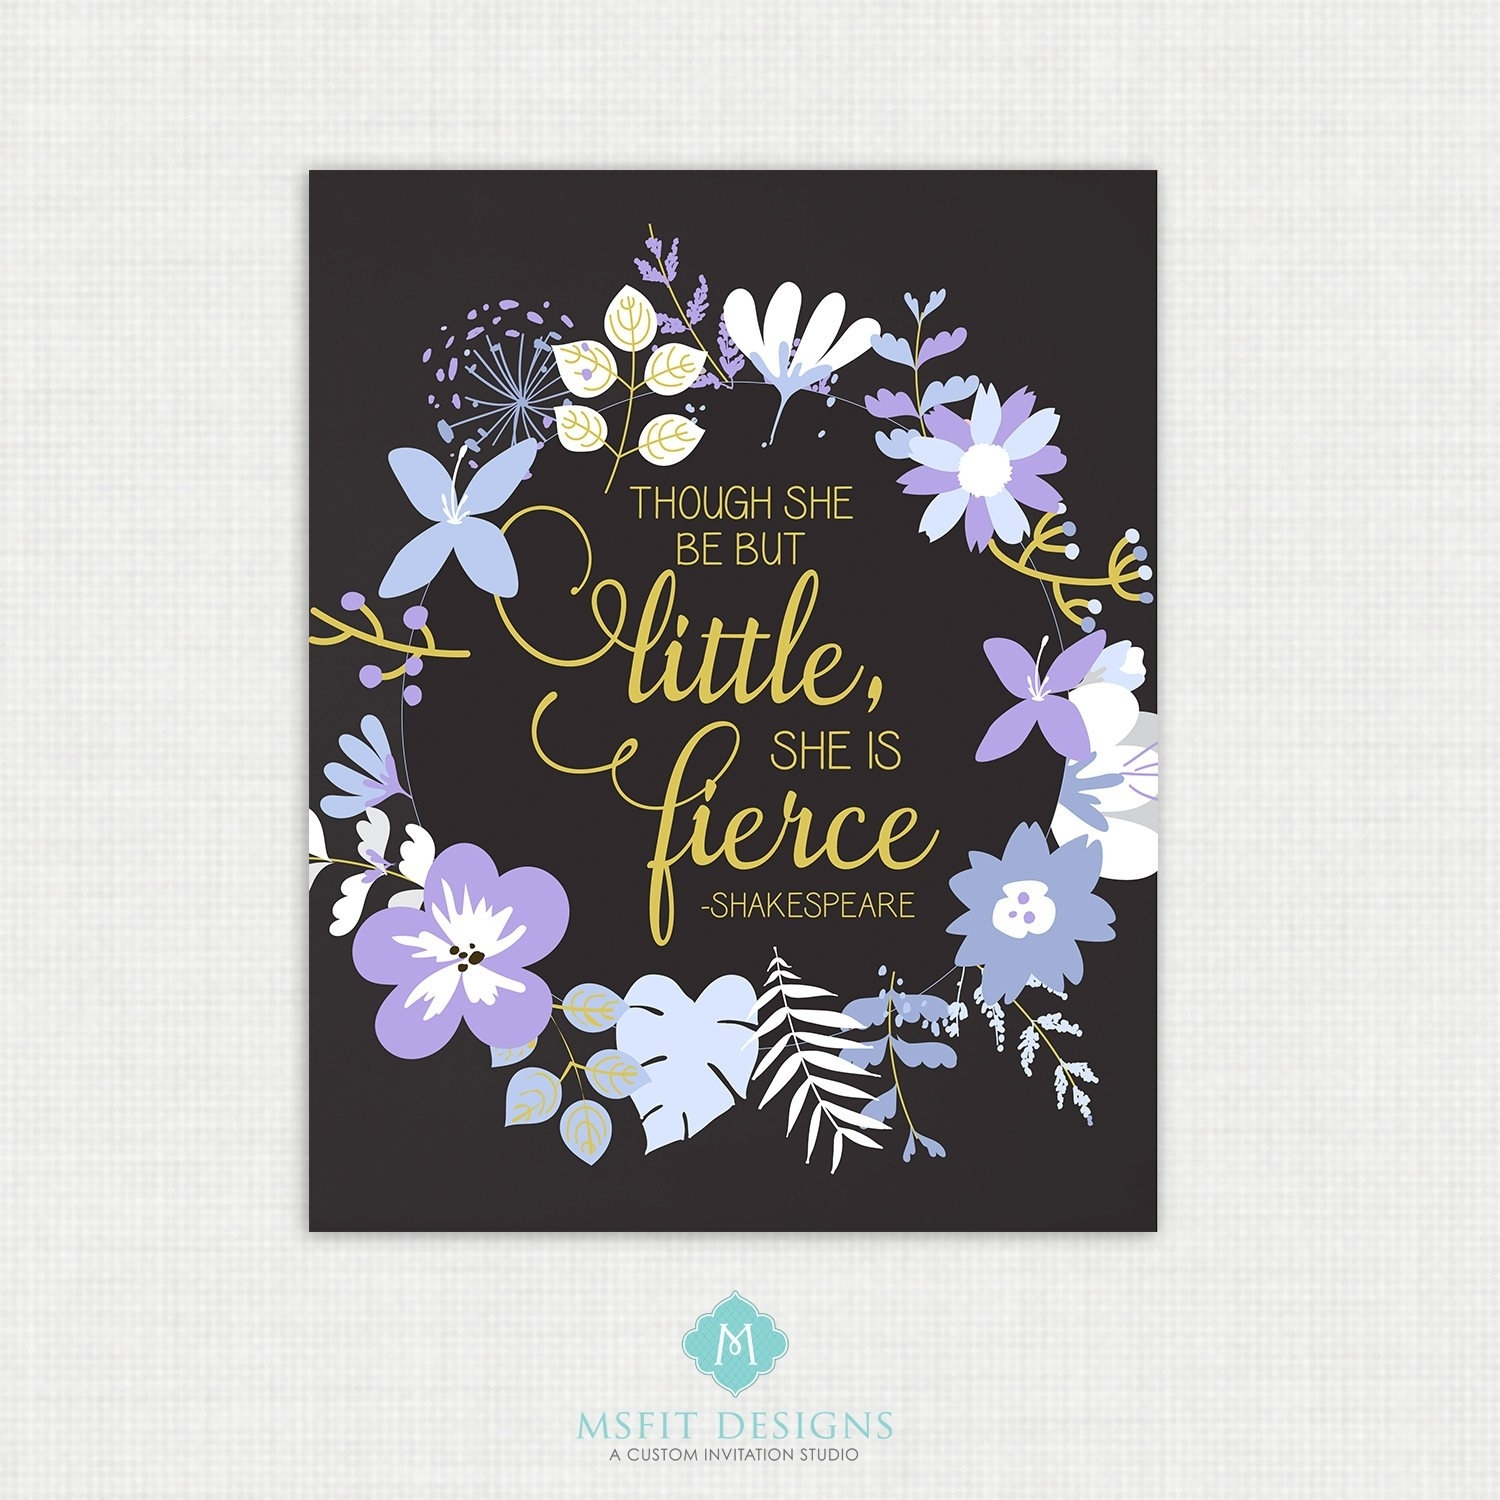 Printable Quote Though She Be But Little She Is Fierce, Wall Art Pertaining To Newest Though She Be But Little She Is Fierce Wall Art (View 12 of 20)